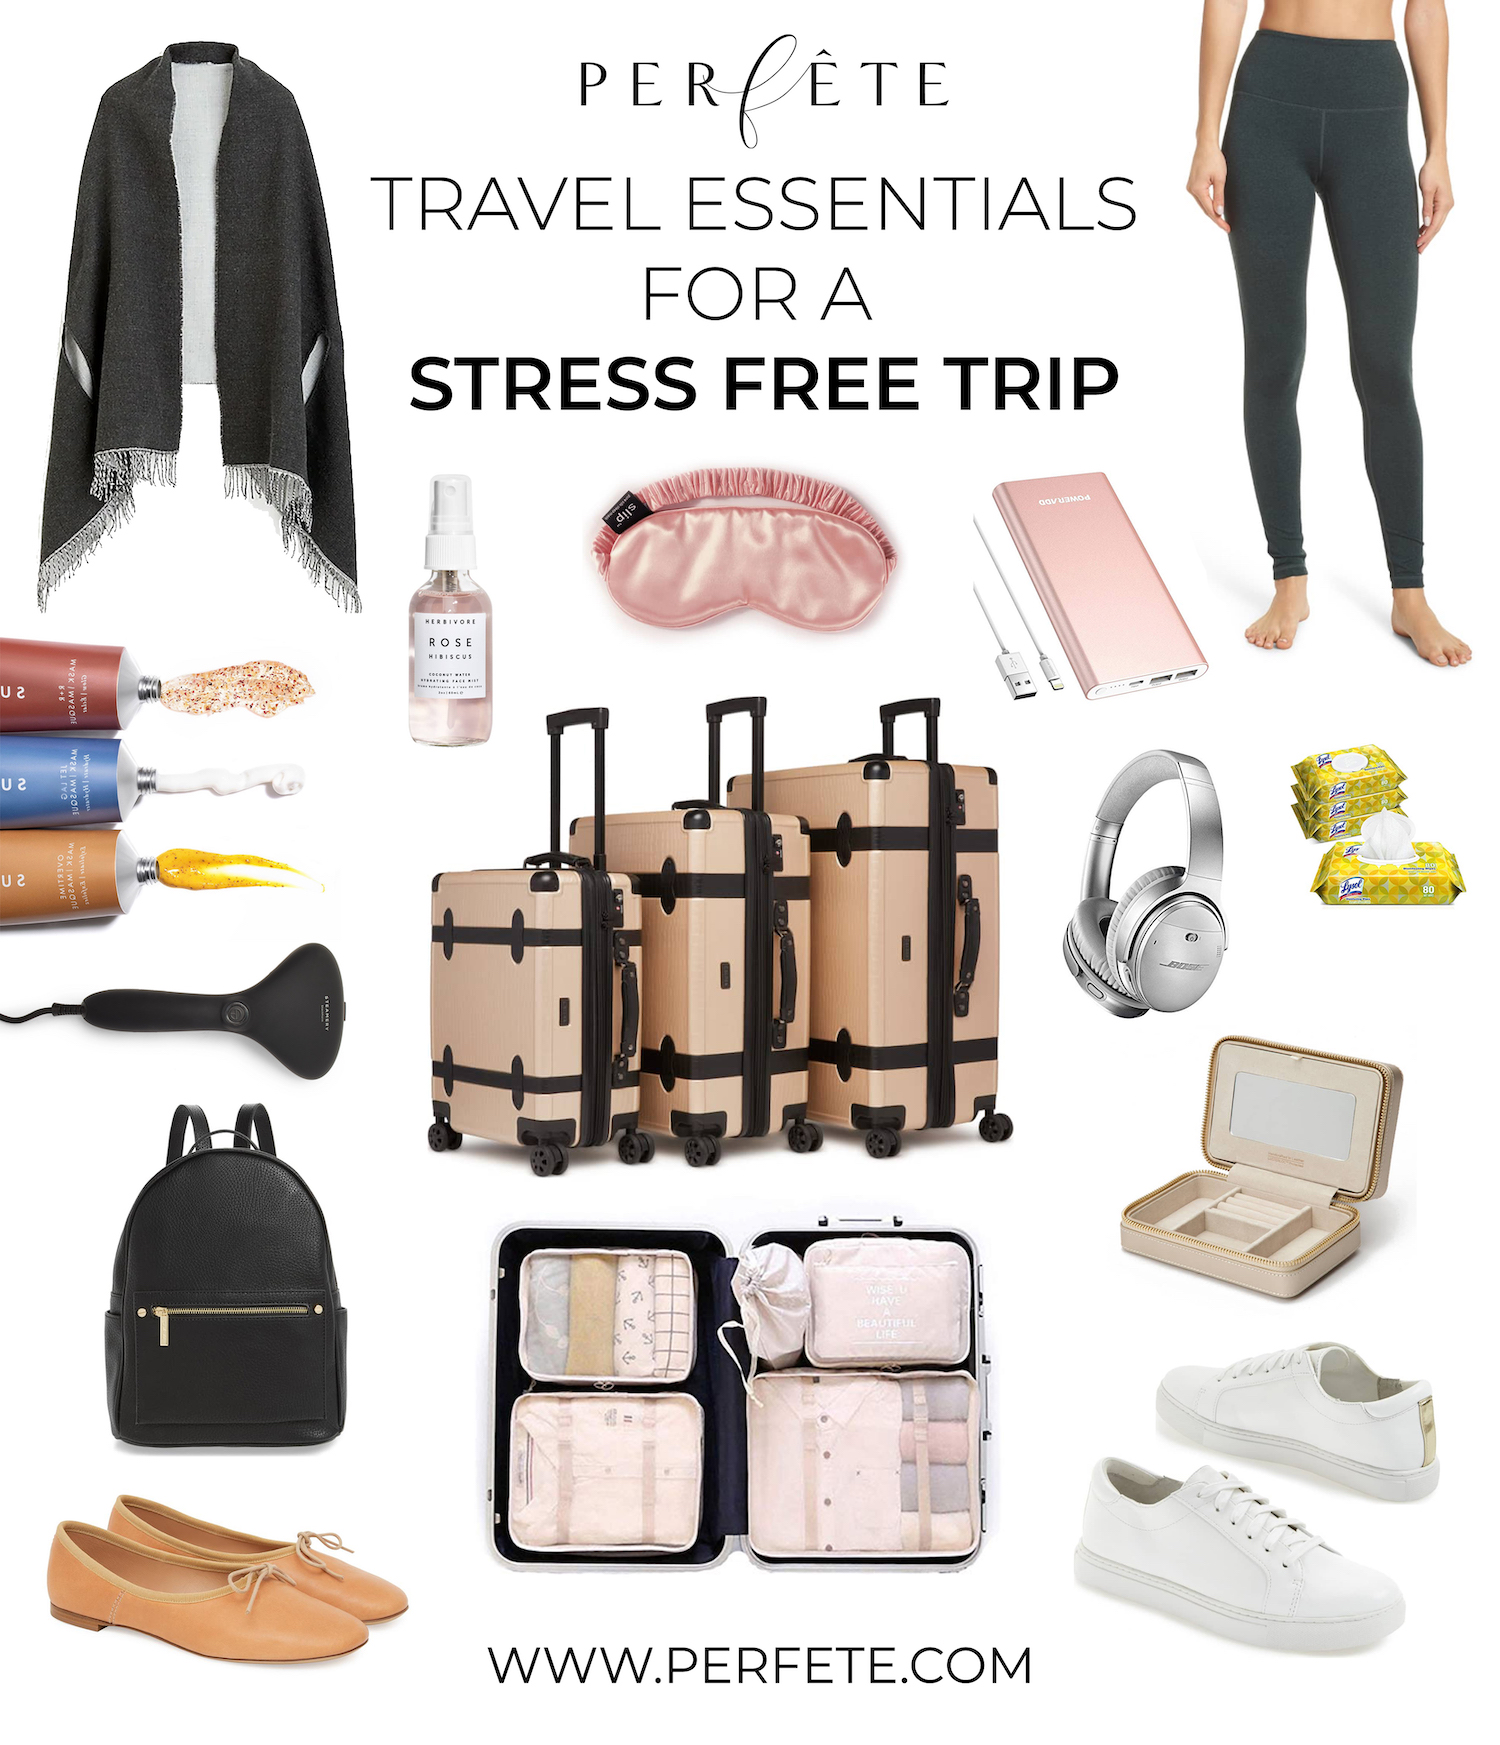 Travel Essentials - advice and travel tips for destination weddings and perfête travel planning